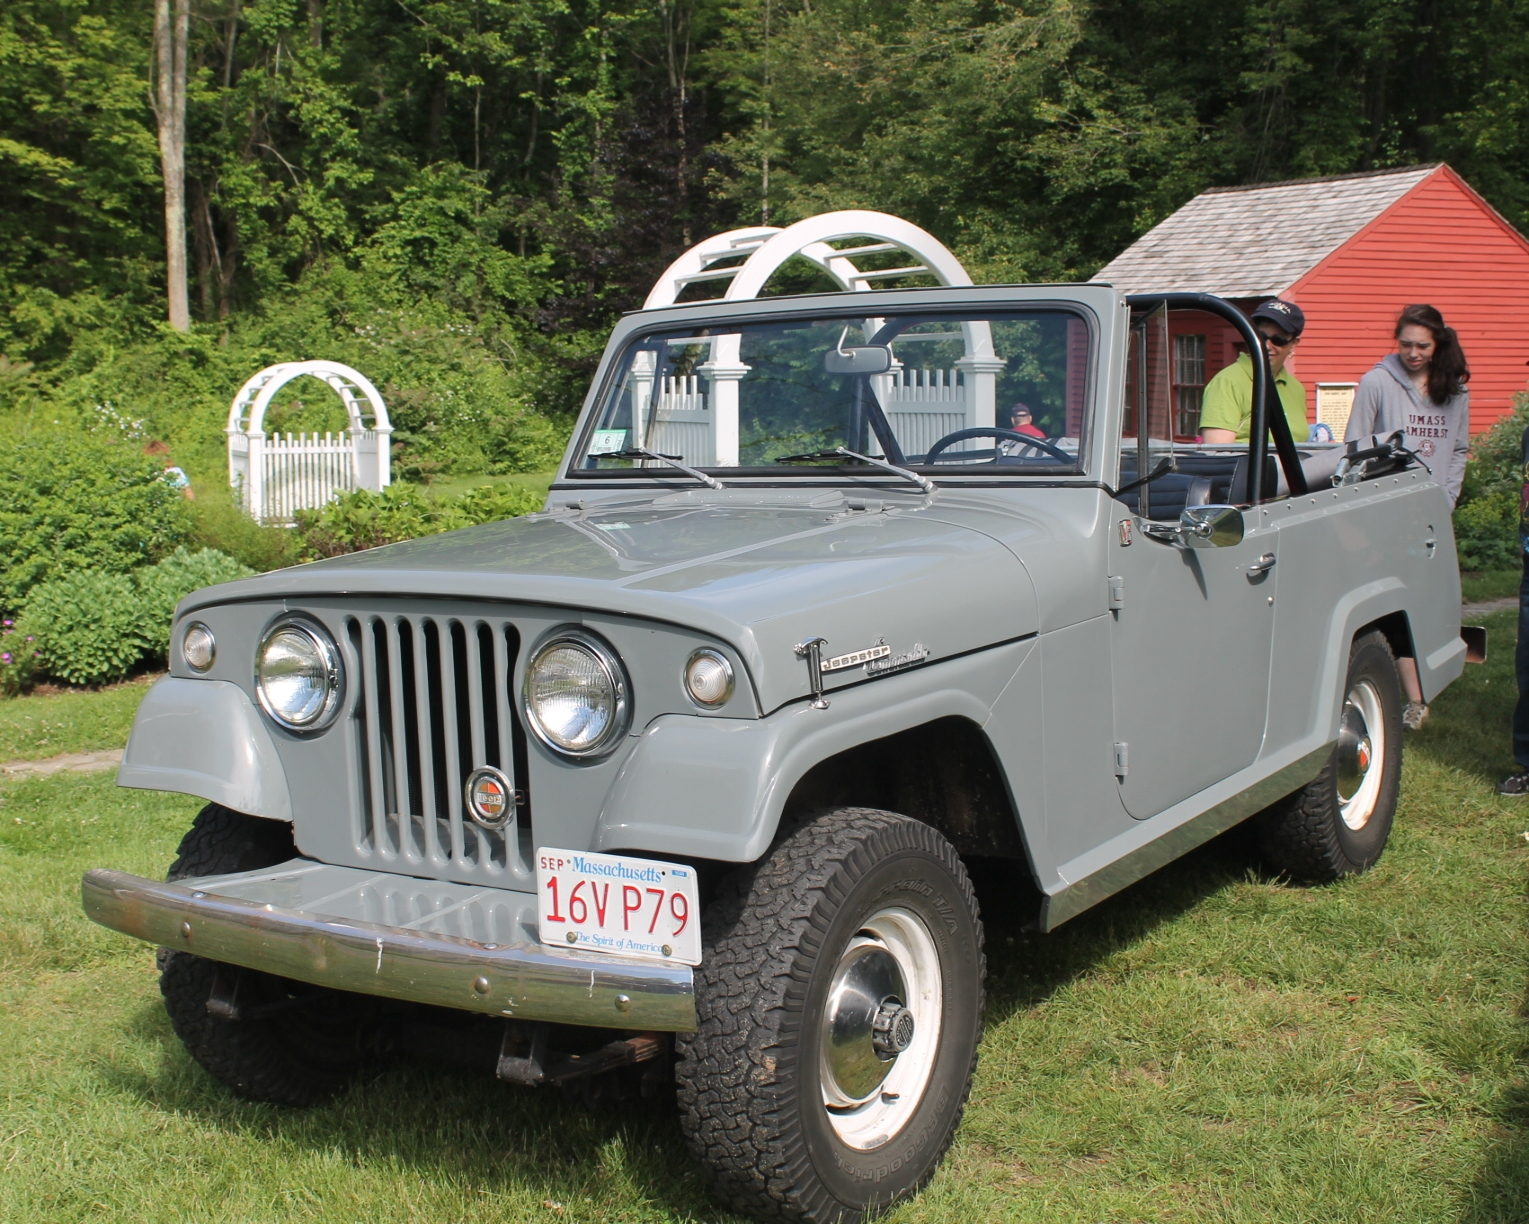 1967 jeepster commando and what i was remembering was a jeepster from